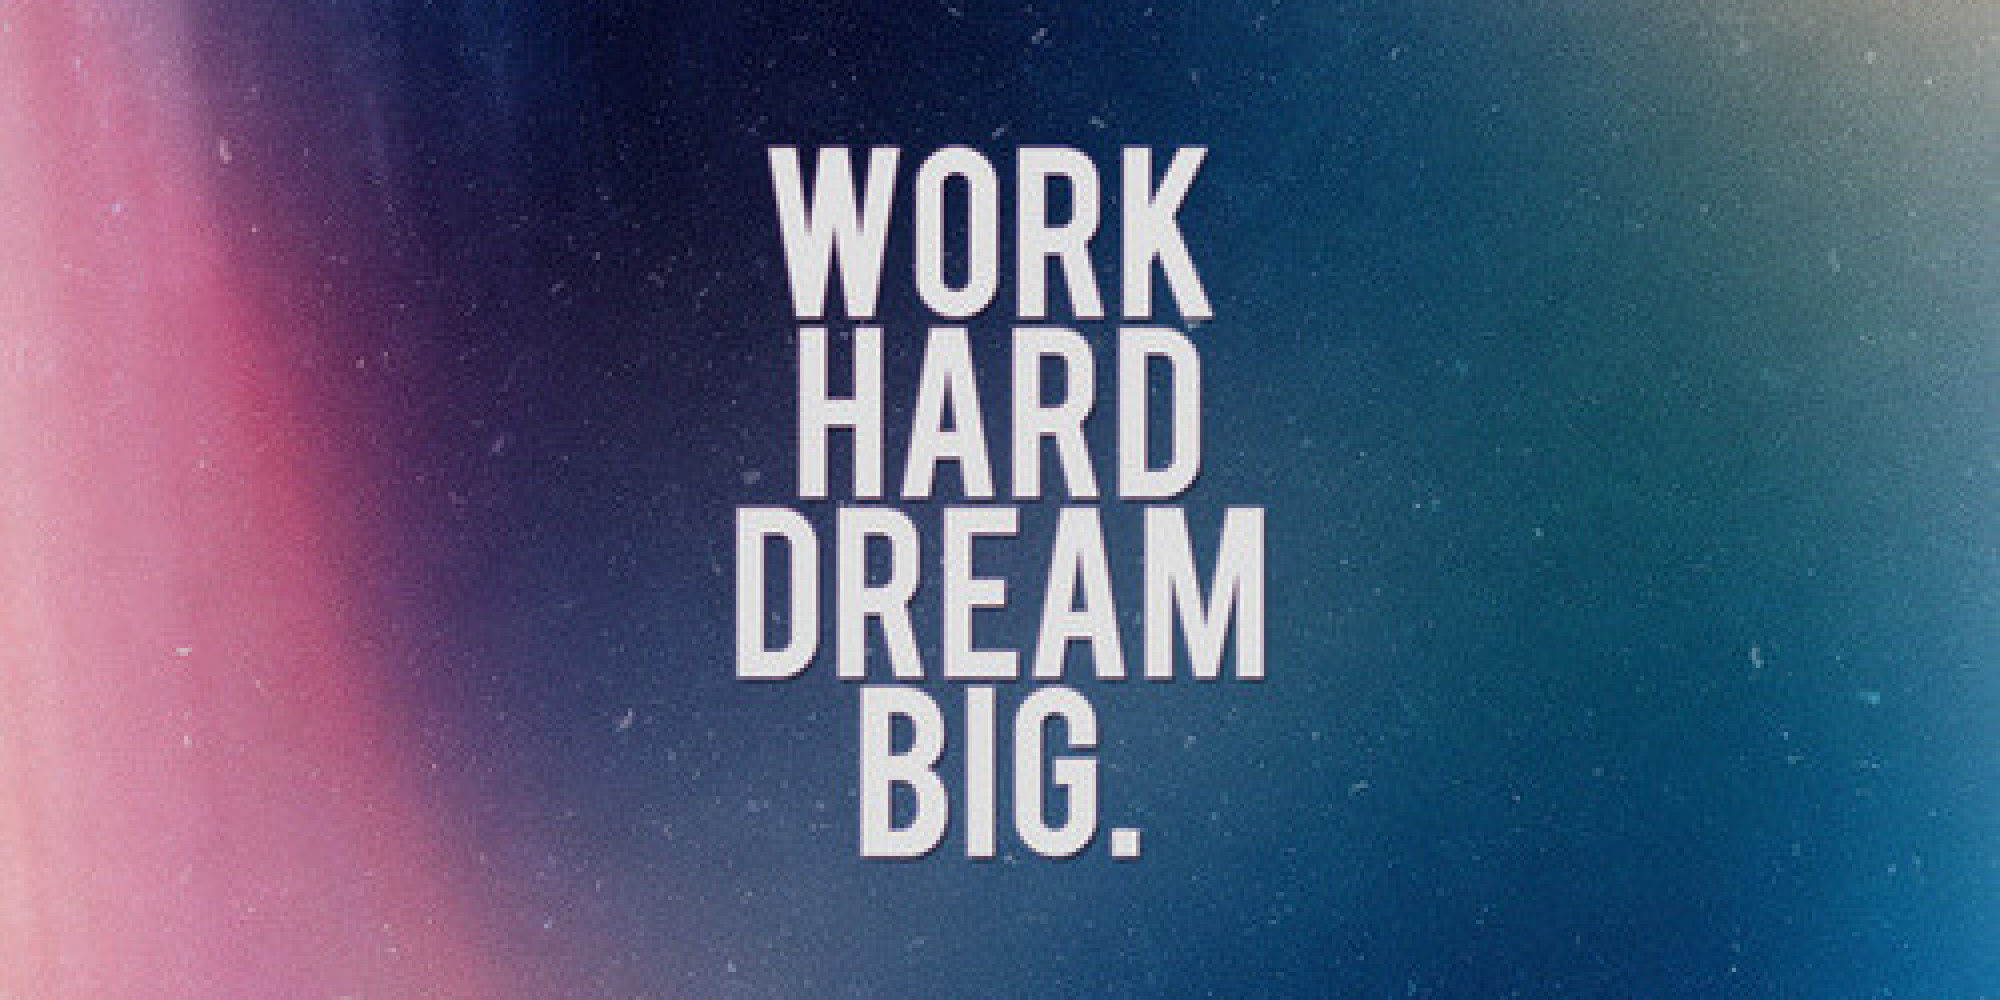 work hard dream big pictures photos and images for facebook tumblr pinterest and twitter. Black Bedroom Furniture Sets. Home Design Ideas